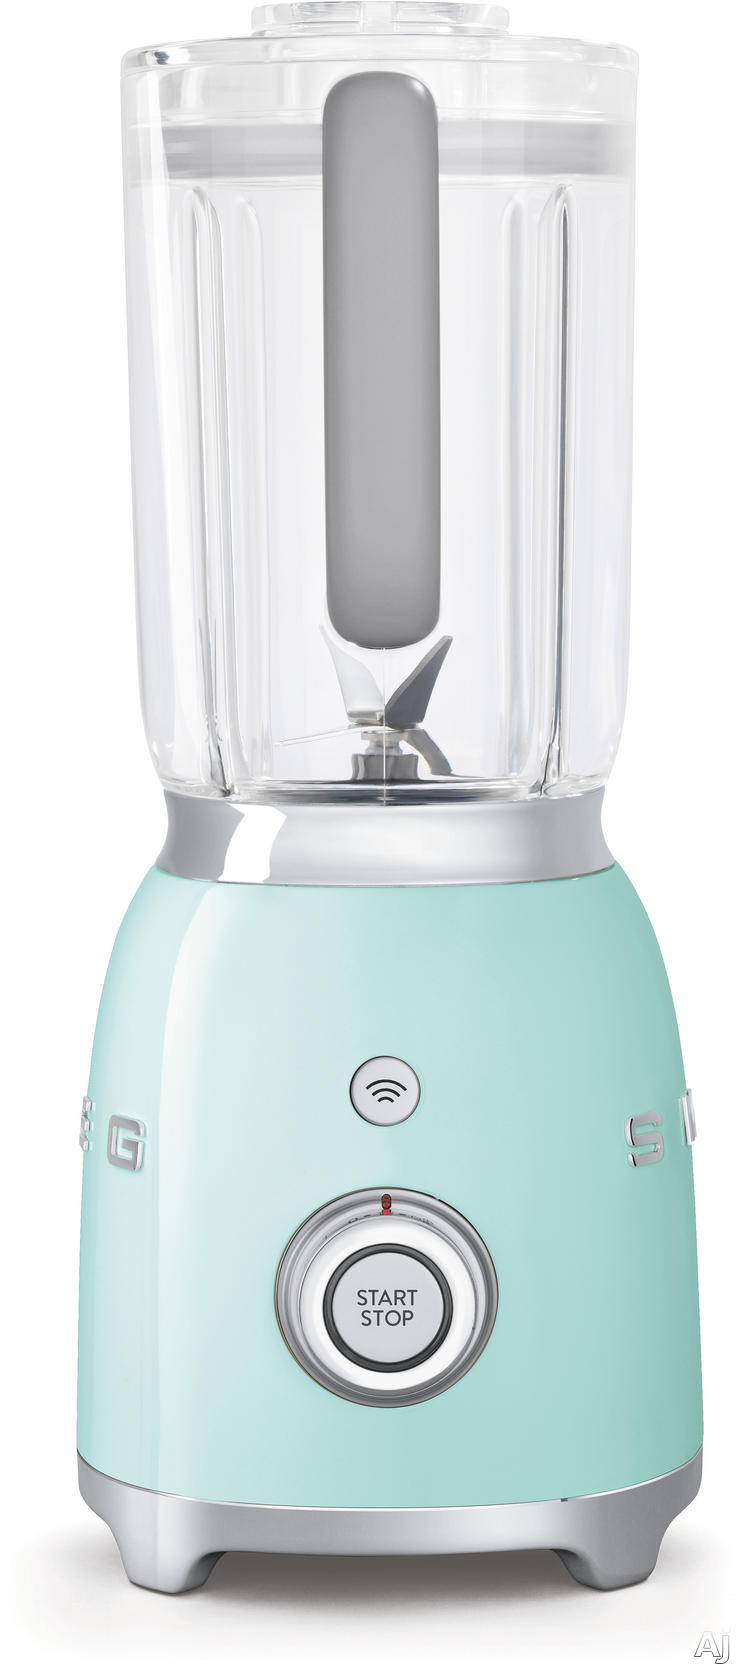 Smeg 50s Retro Design BLF01PGUS Countertop Blender with 48 oz Capacity 4 Speeds Stainless Steel Dual Blades Safety Lock BPA Free Jug and Anti Slip Feet Pastel Green